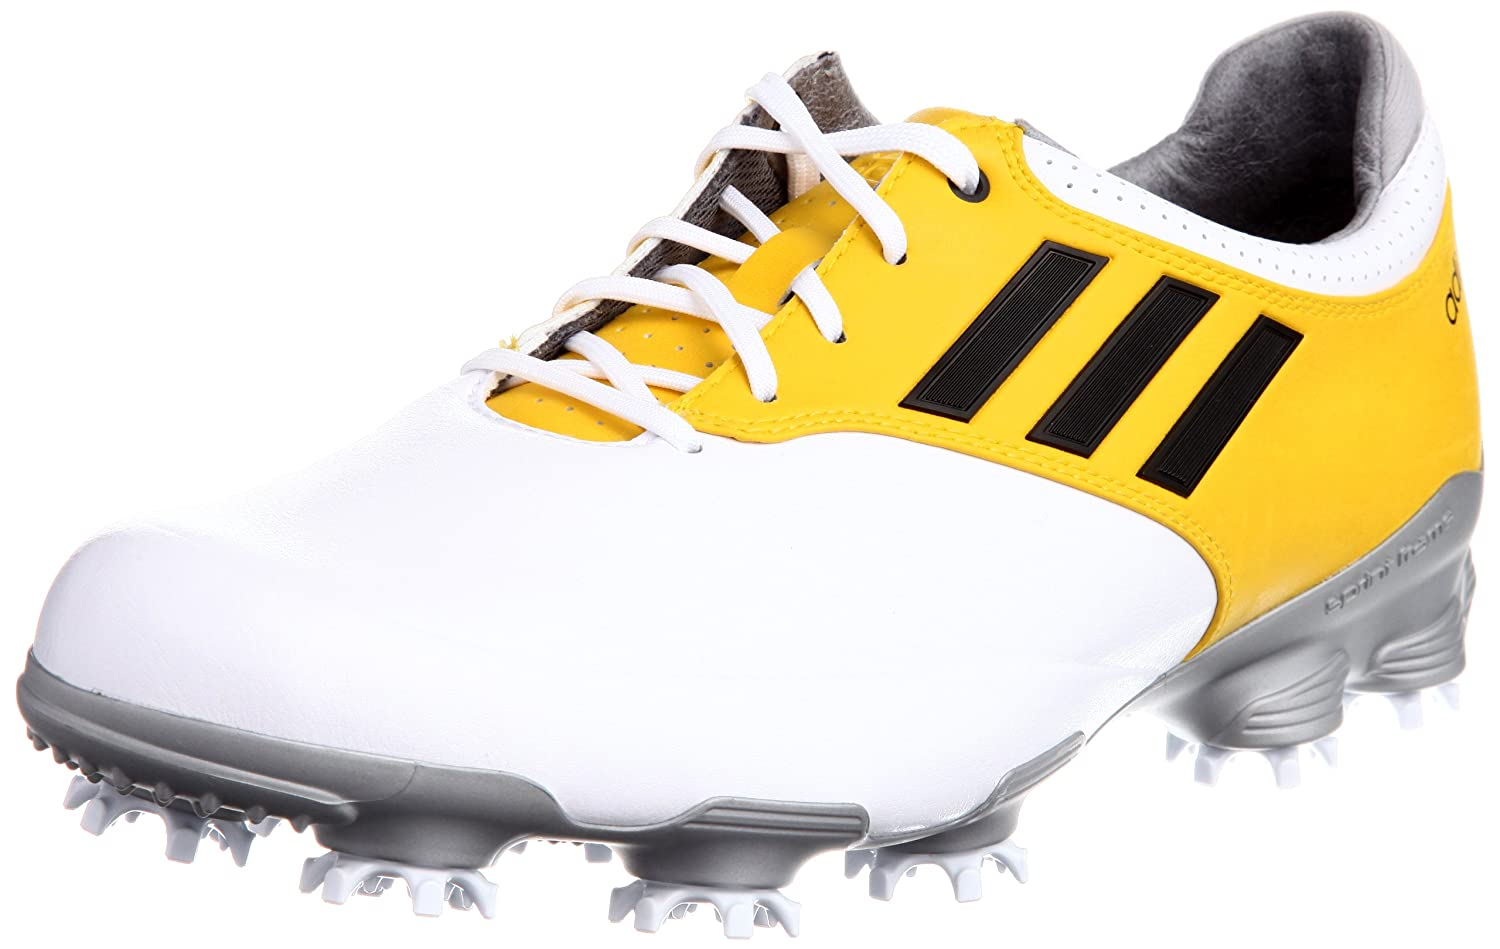 d469444bb5f8 Adidas Adizero Tour Golf Shoes White Yellow UK 10 W  Amazon.co.uk  Sports    Outdoors